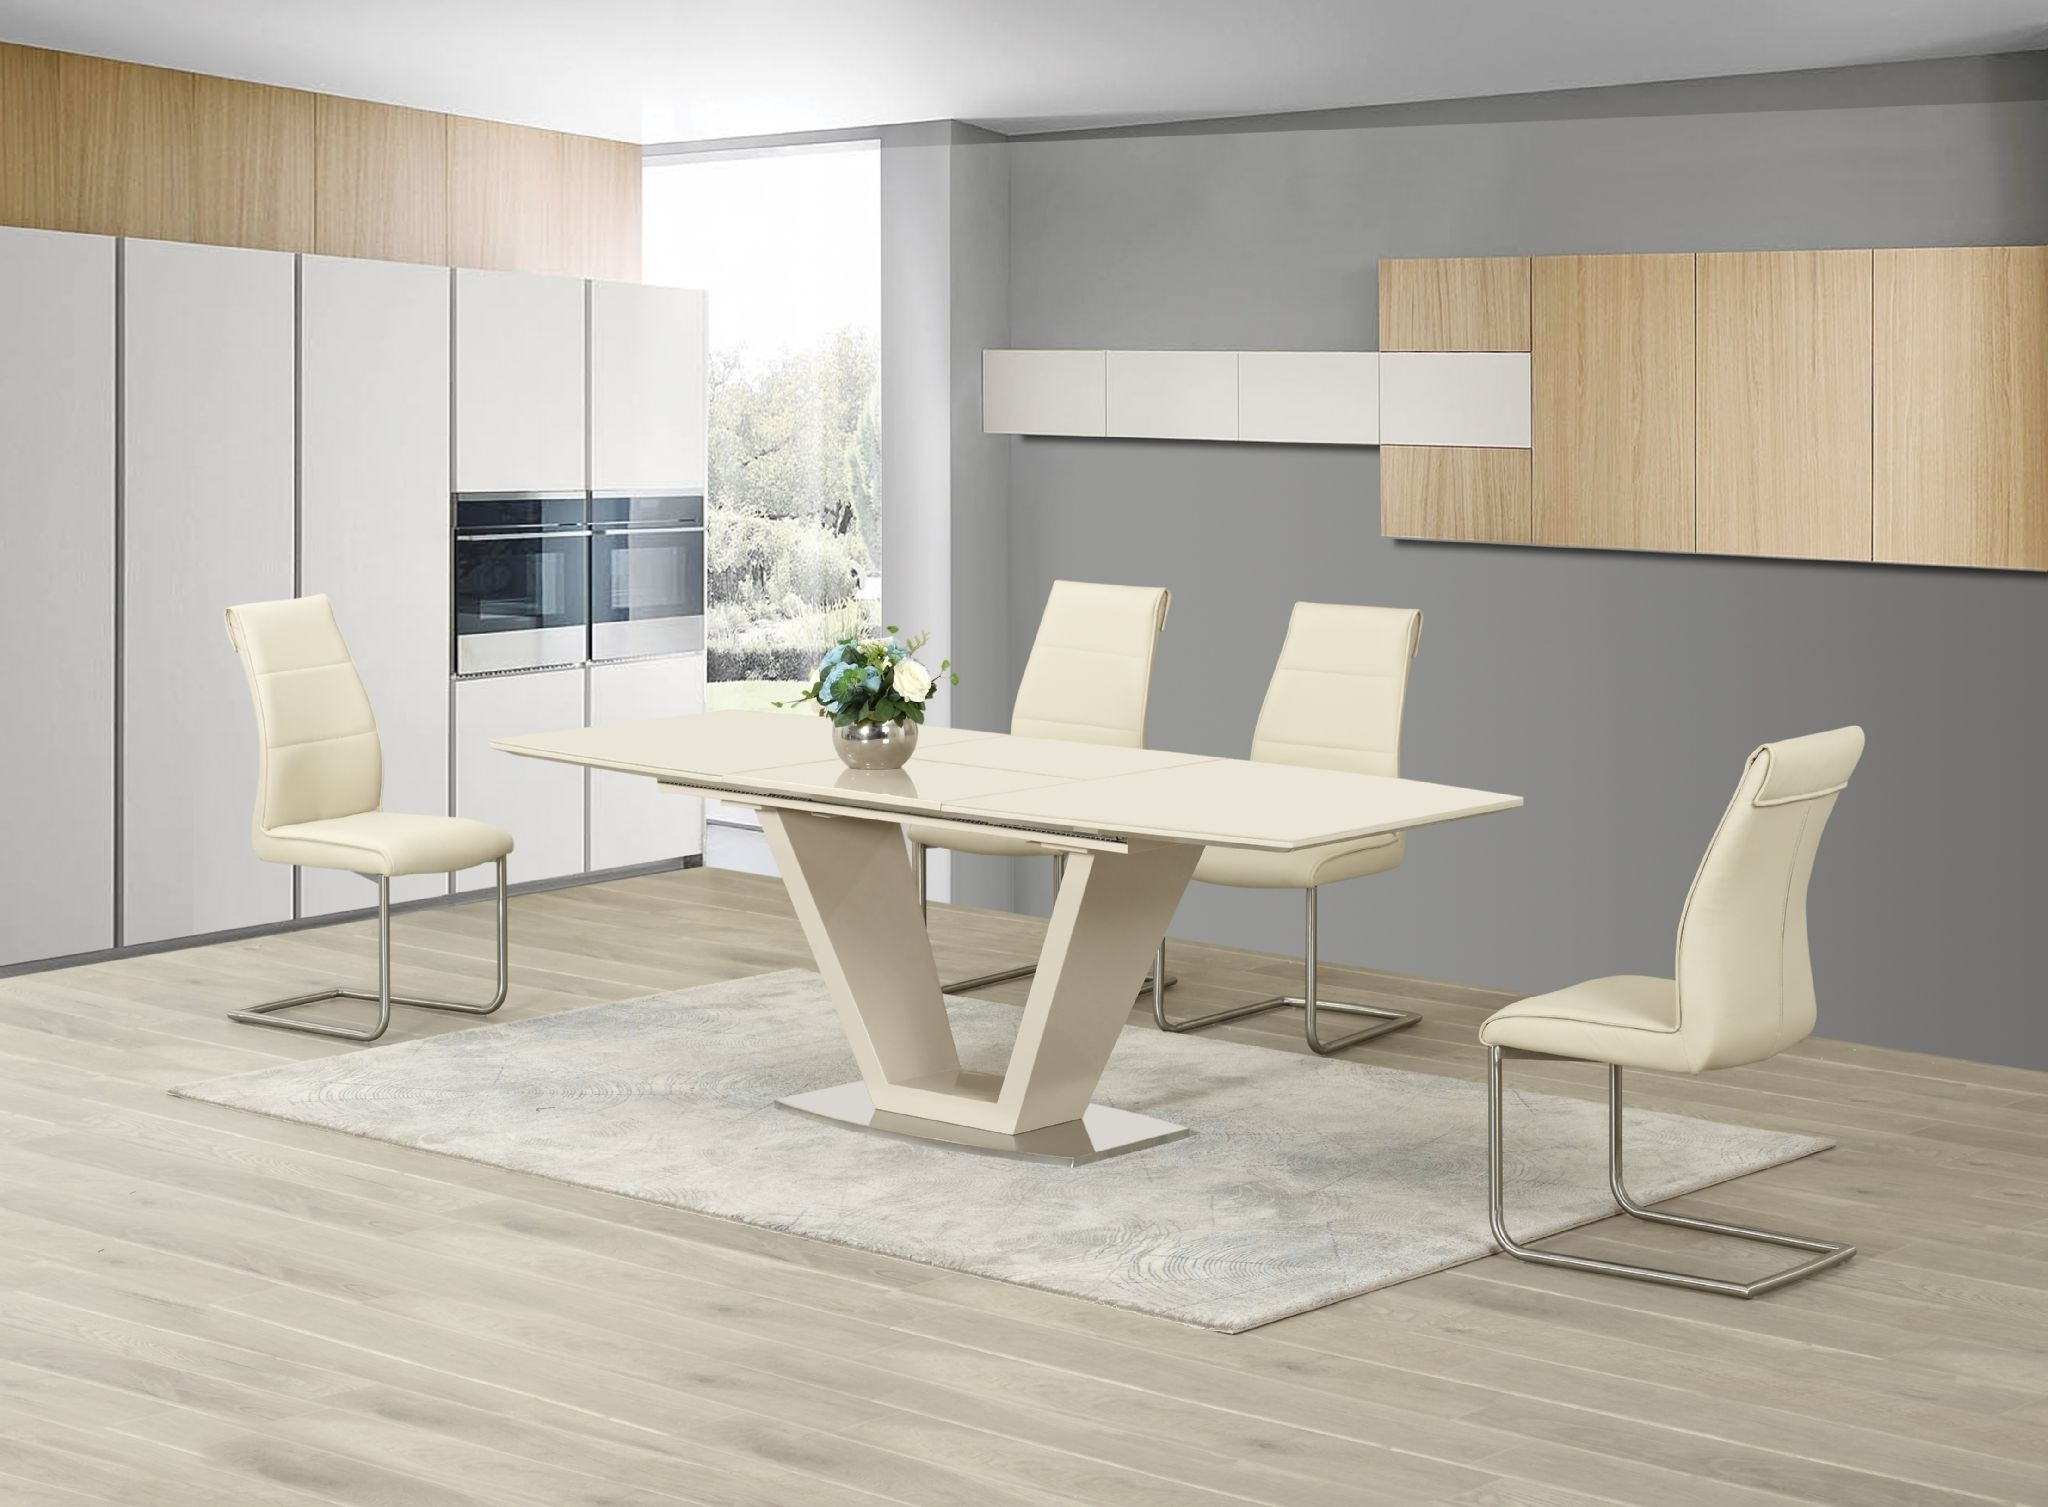 Ga Loriga Cream Gloss Glass Designer Dining Table Extending 160 220 with regard to Well known Gloss White Dining Tables And Chairs